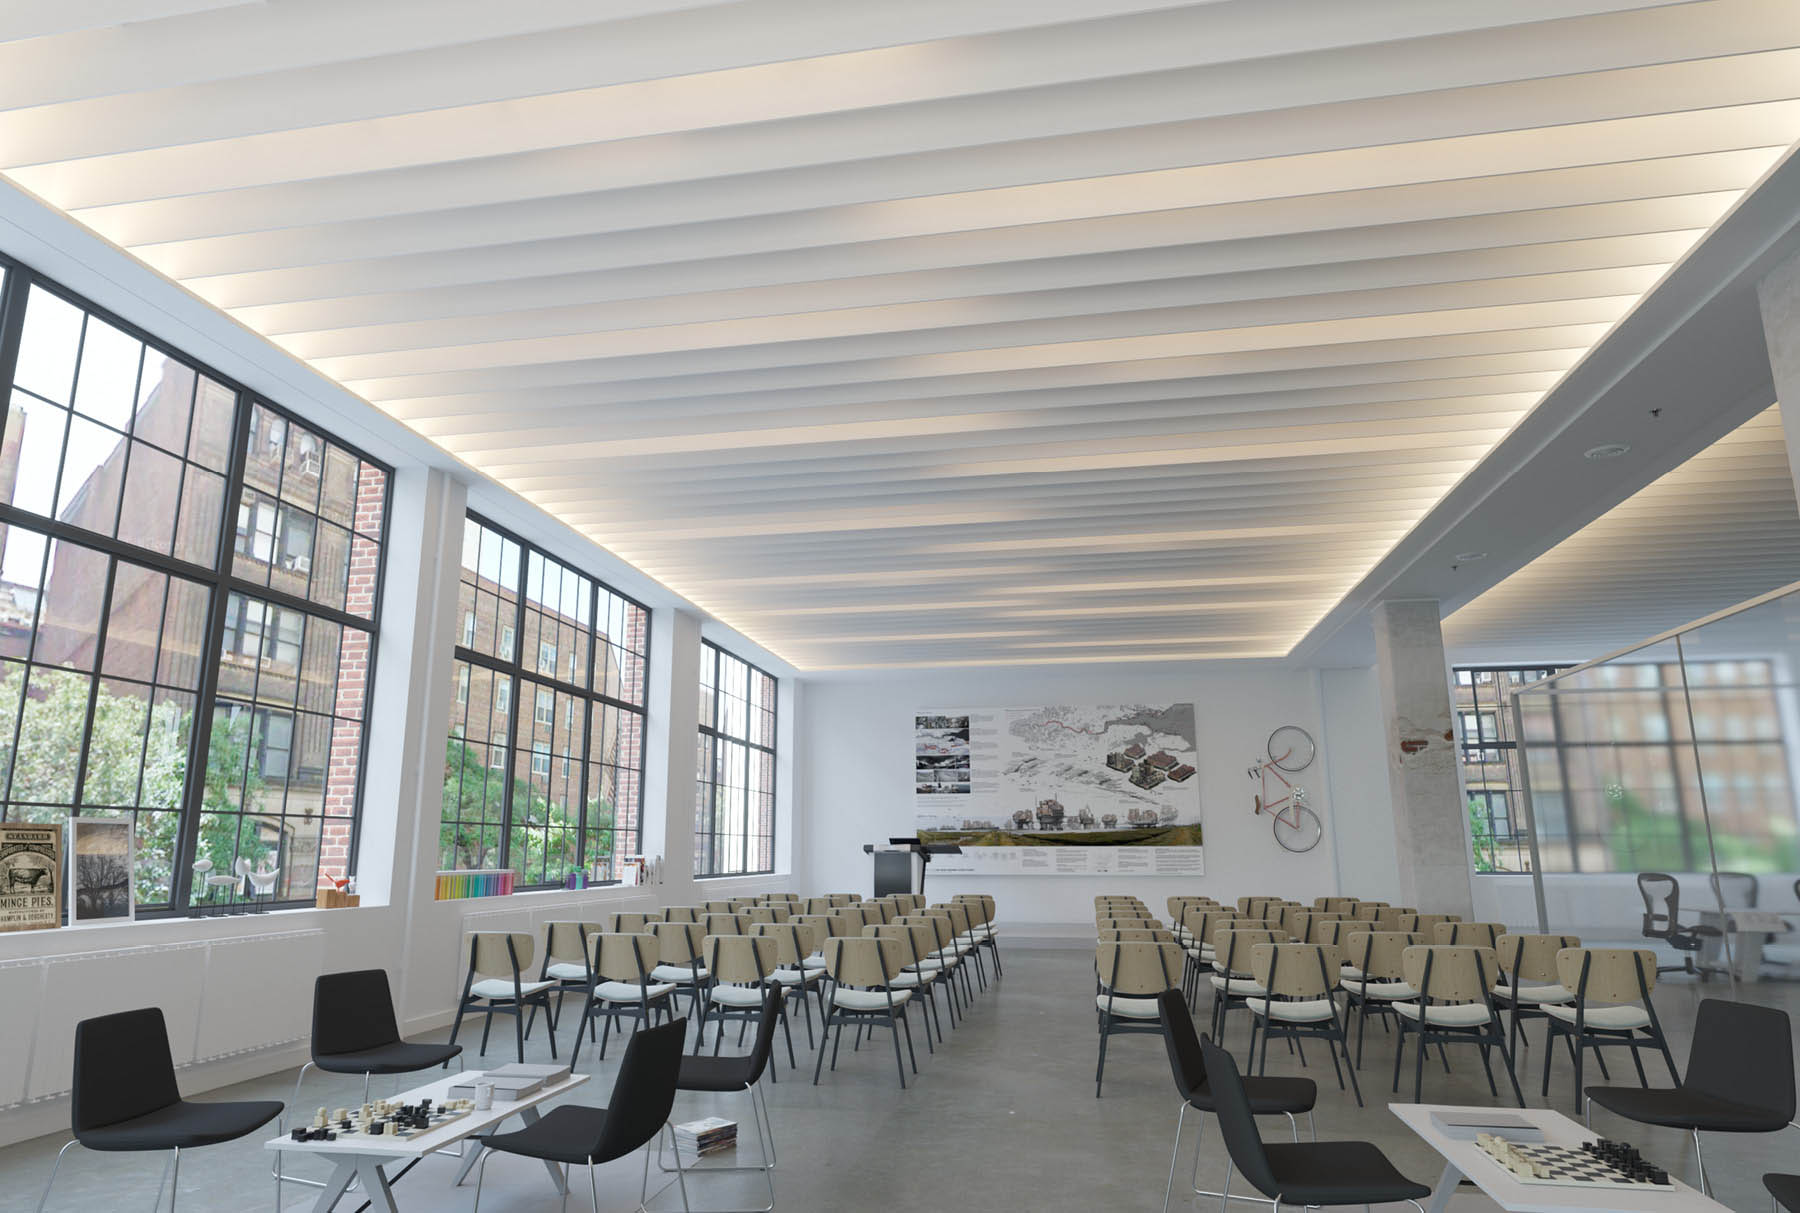 Atmosphera® Standard Linea above lecture space.